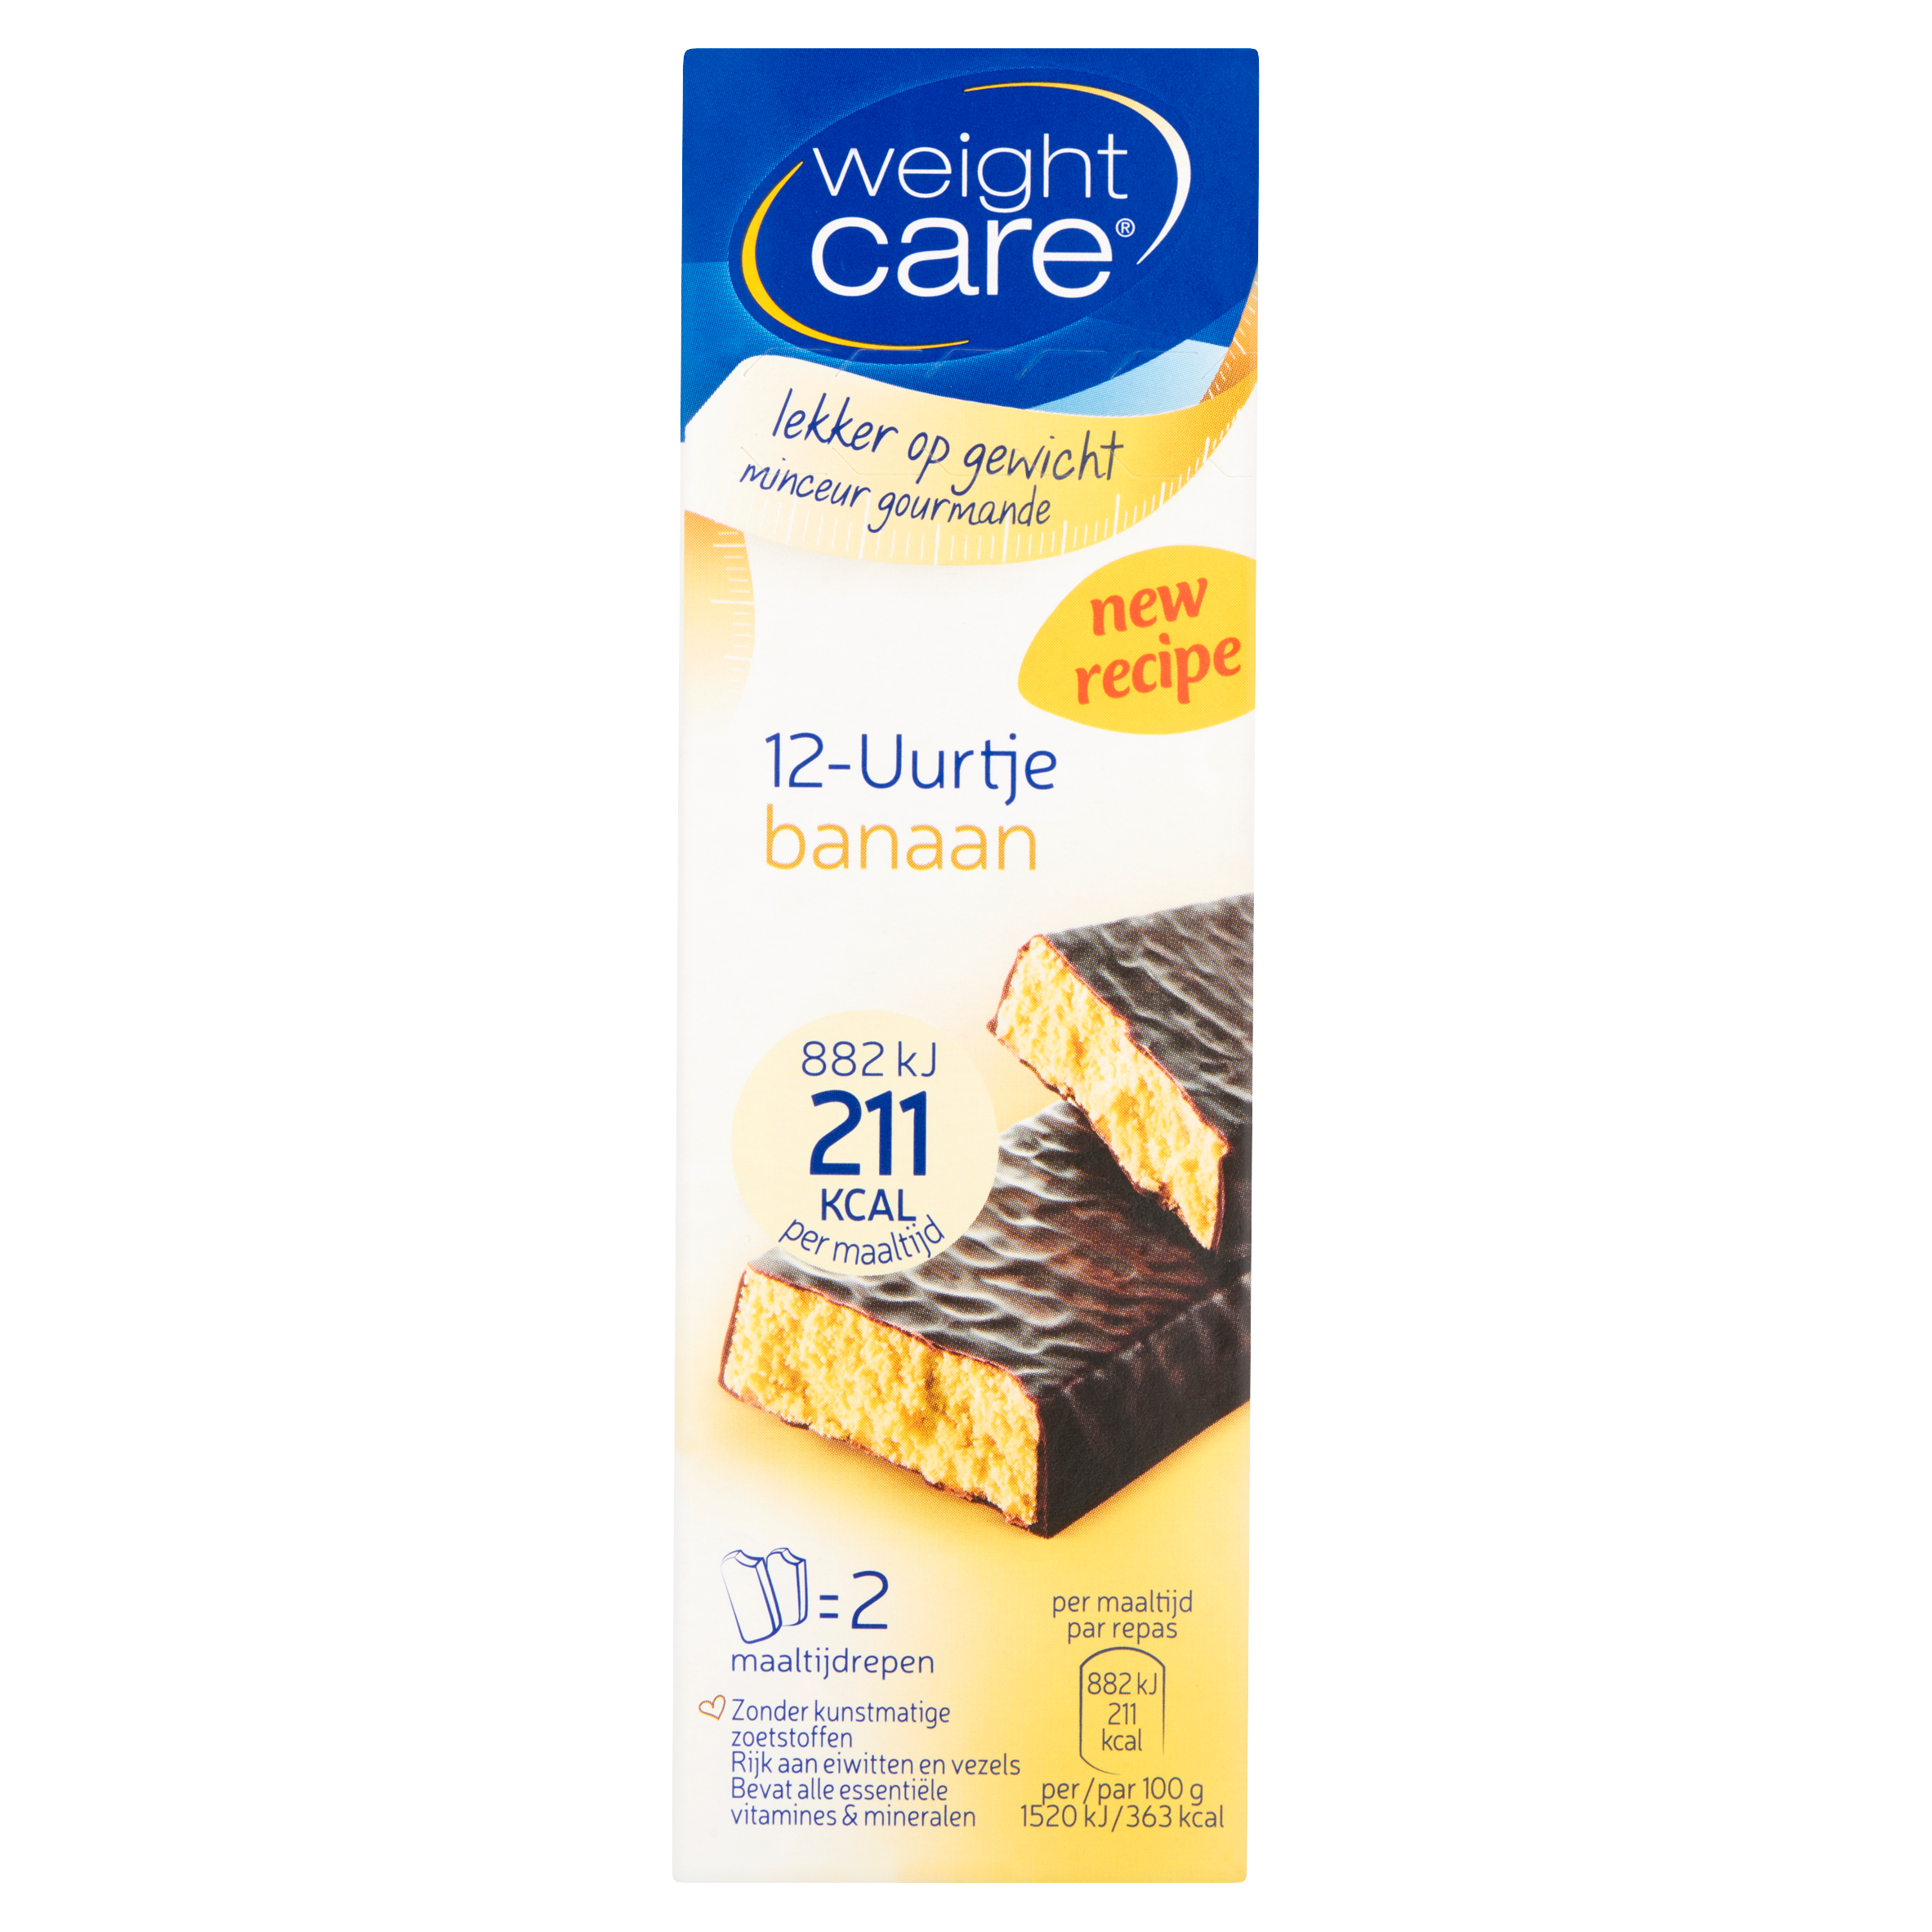 Weight Care 12-Uurtje Banaan 2 x 58 g